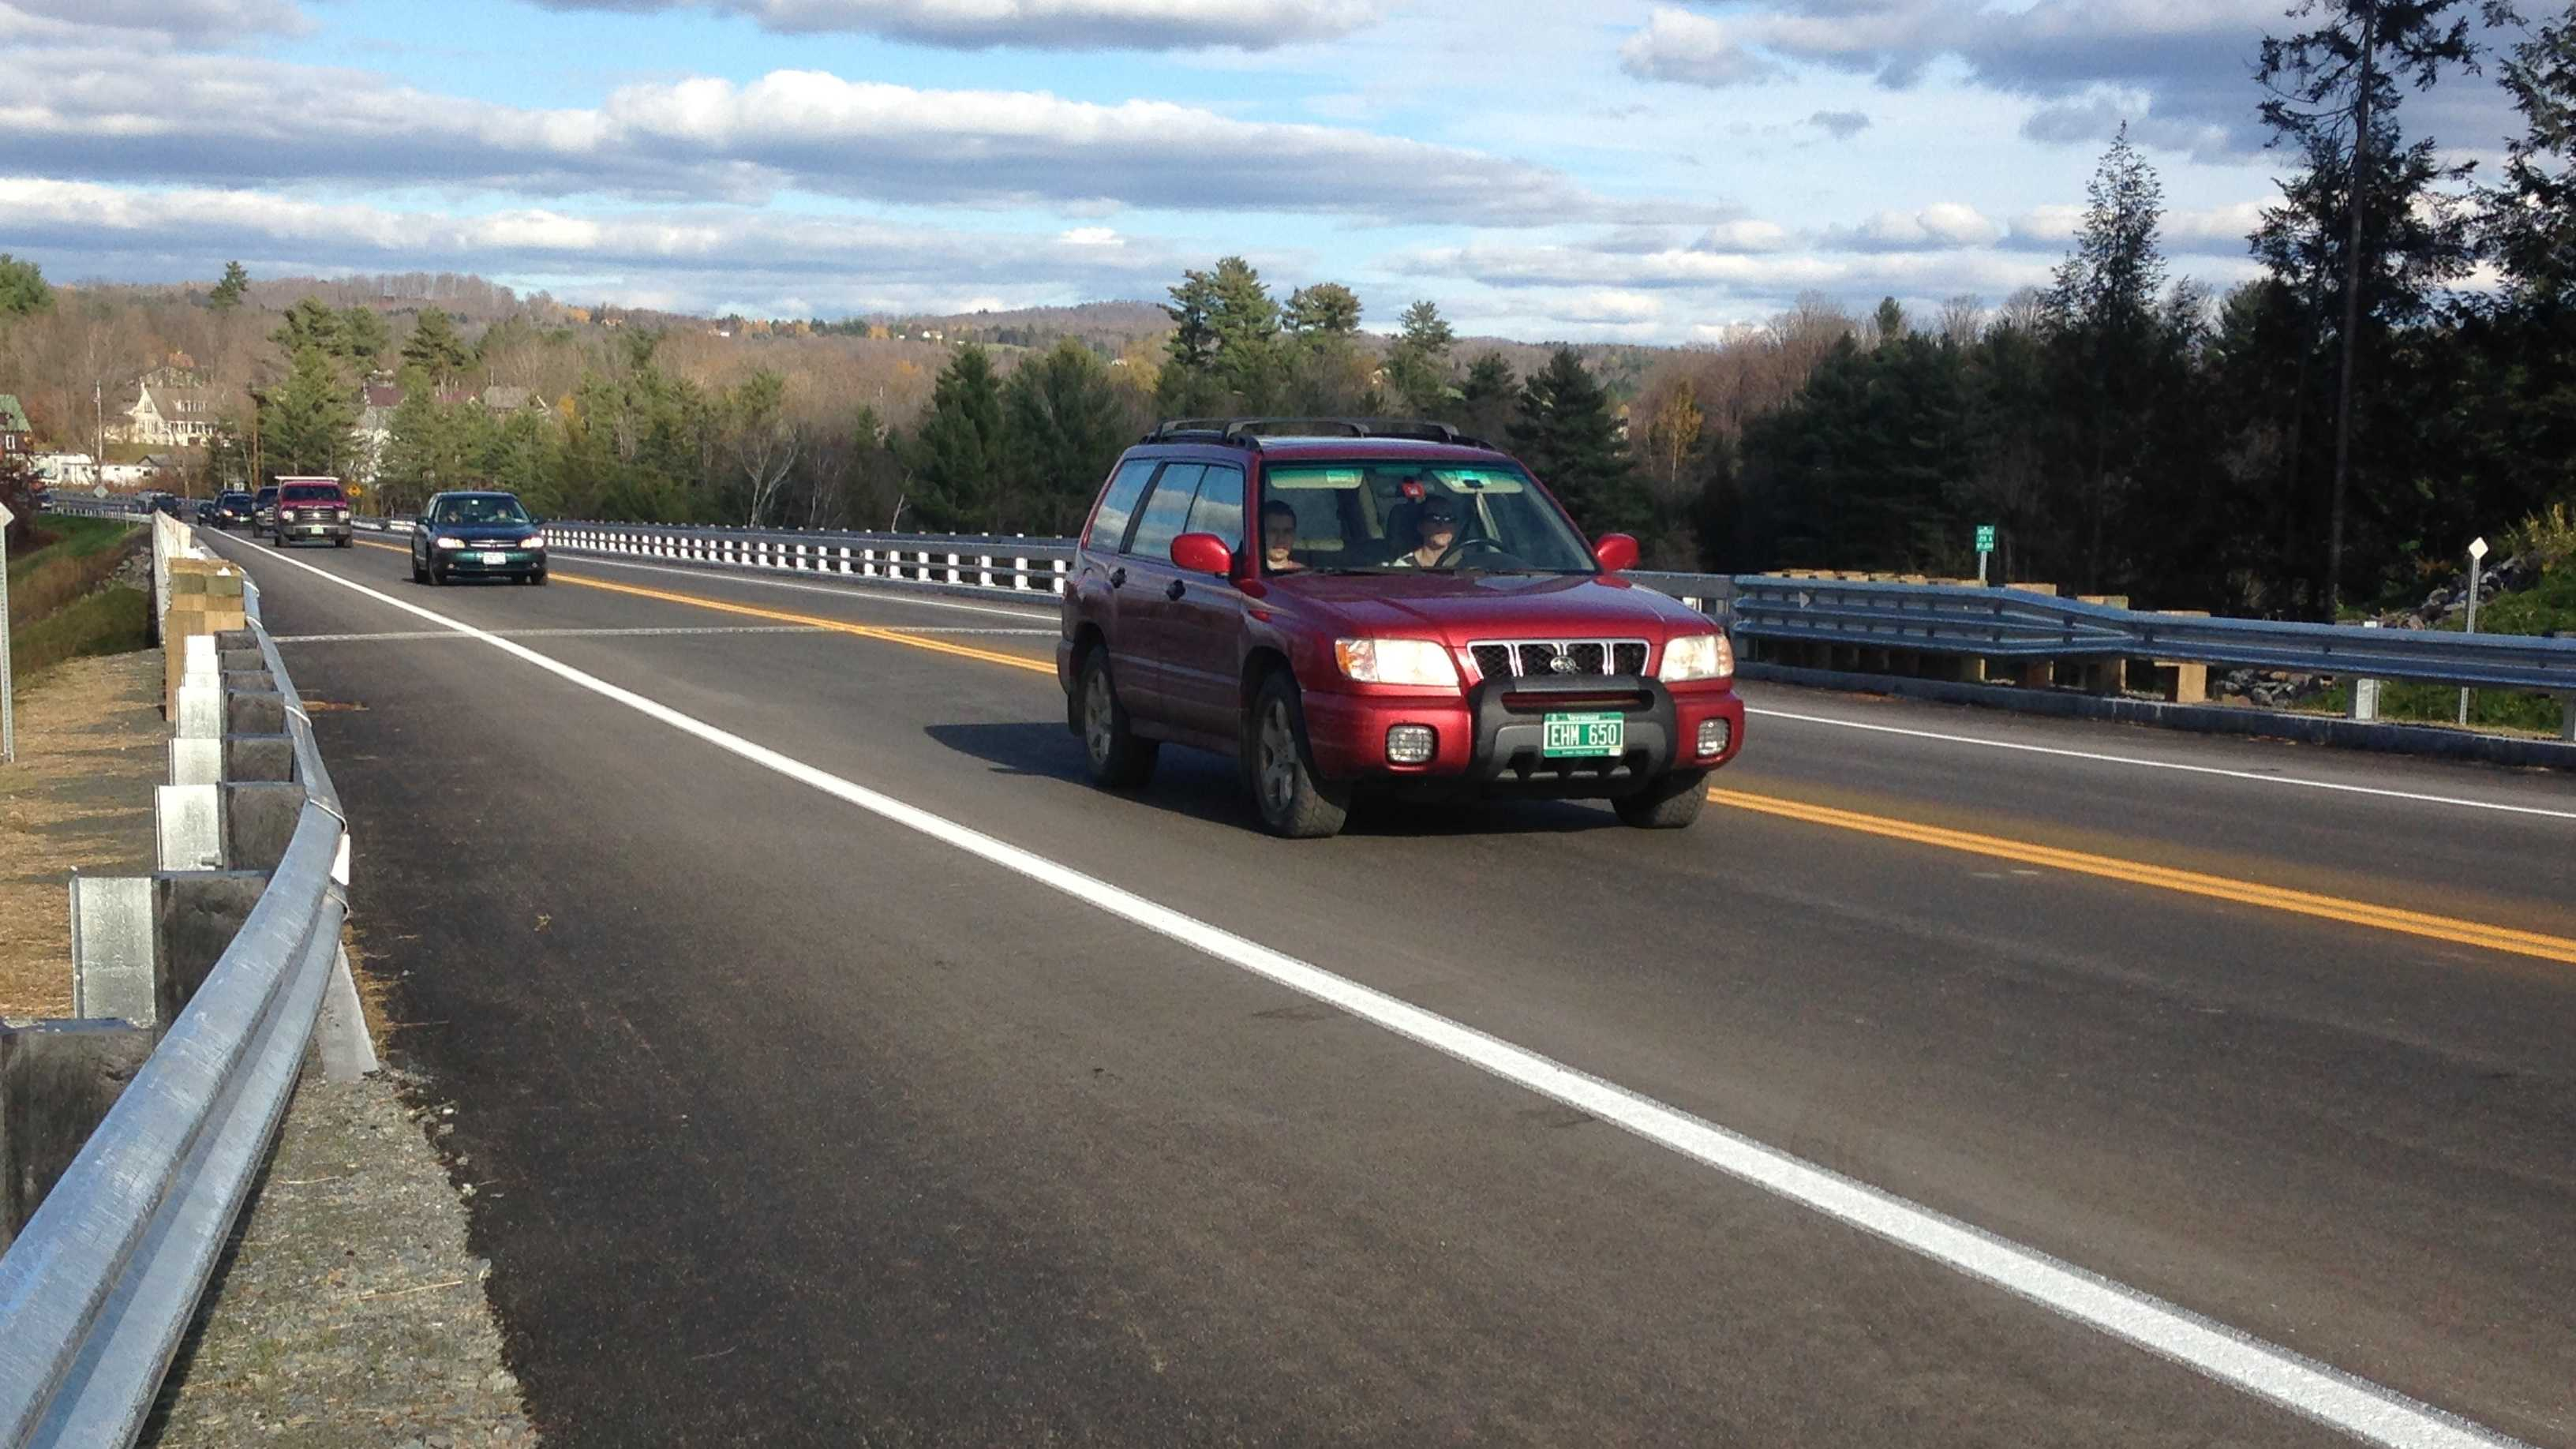 The $31 million Morrisville by-pass road opened Friday afternoon.